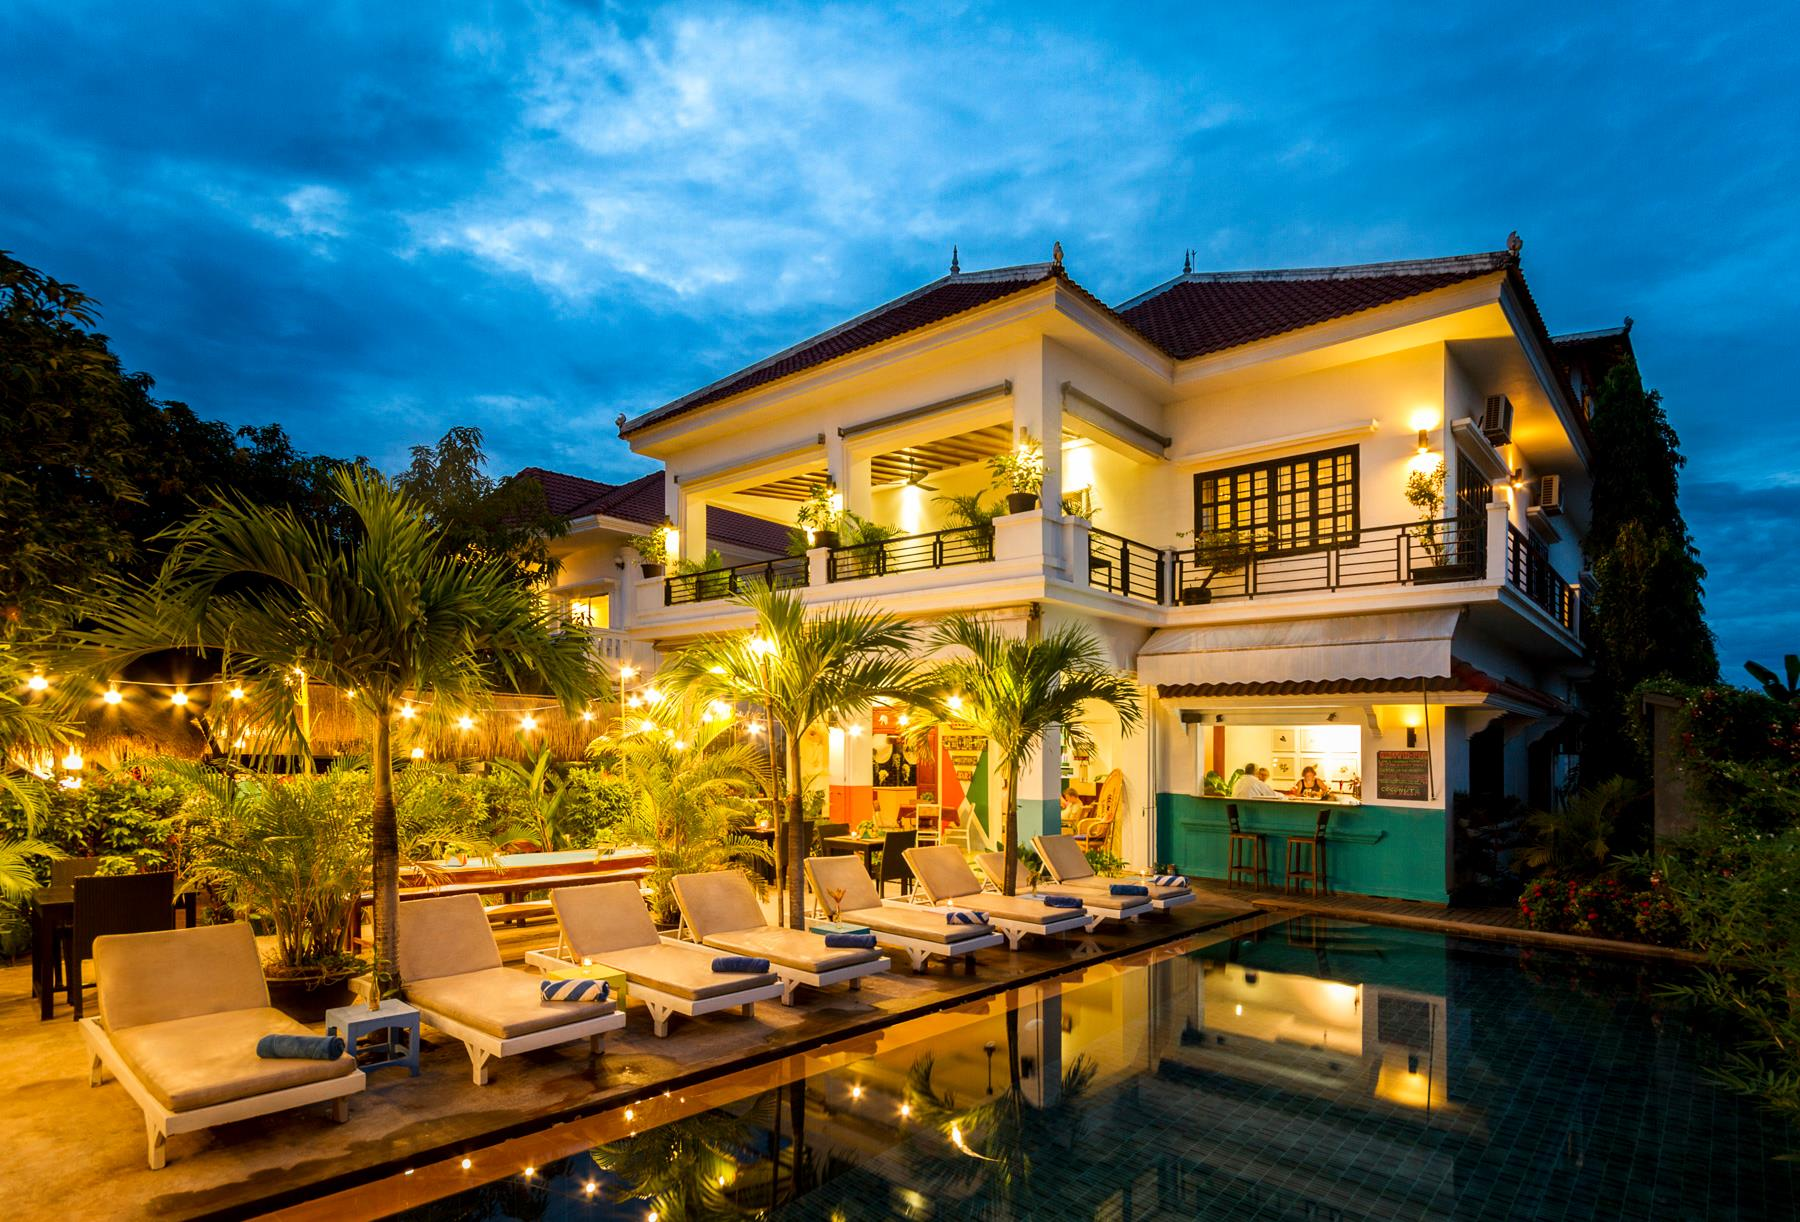 The pool and hotel by night at Baby Elephant Boutique Hotel in Siem Reap, Cambodia